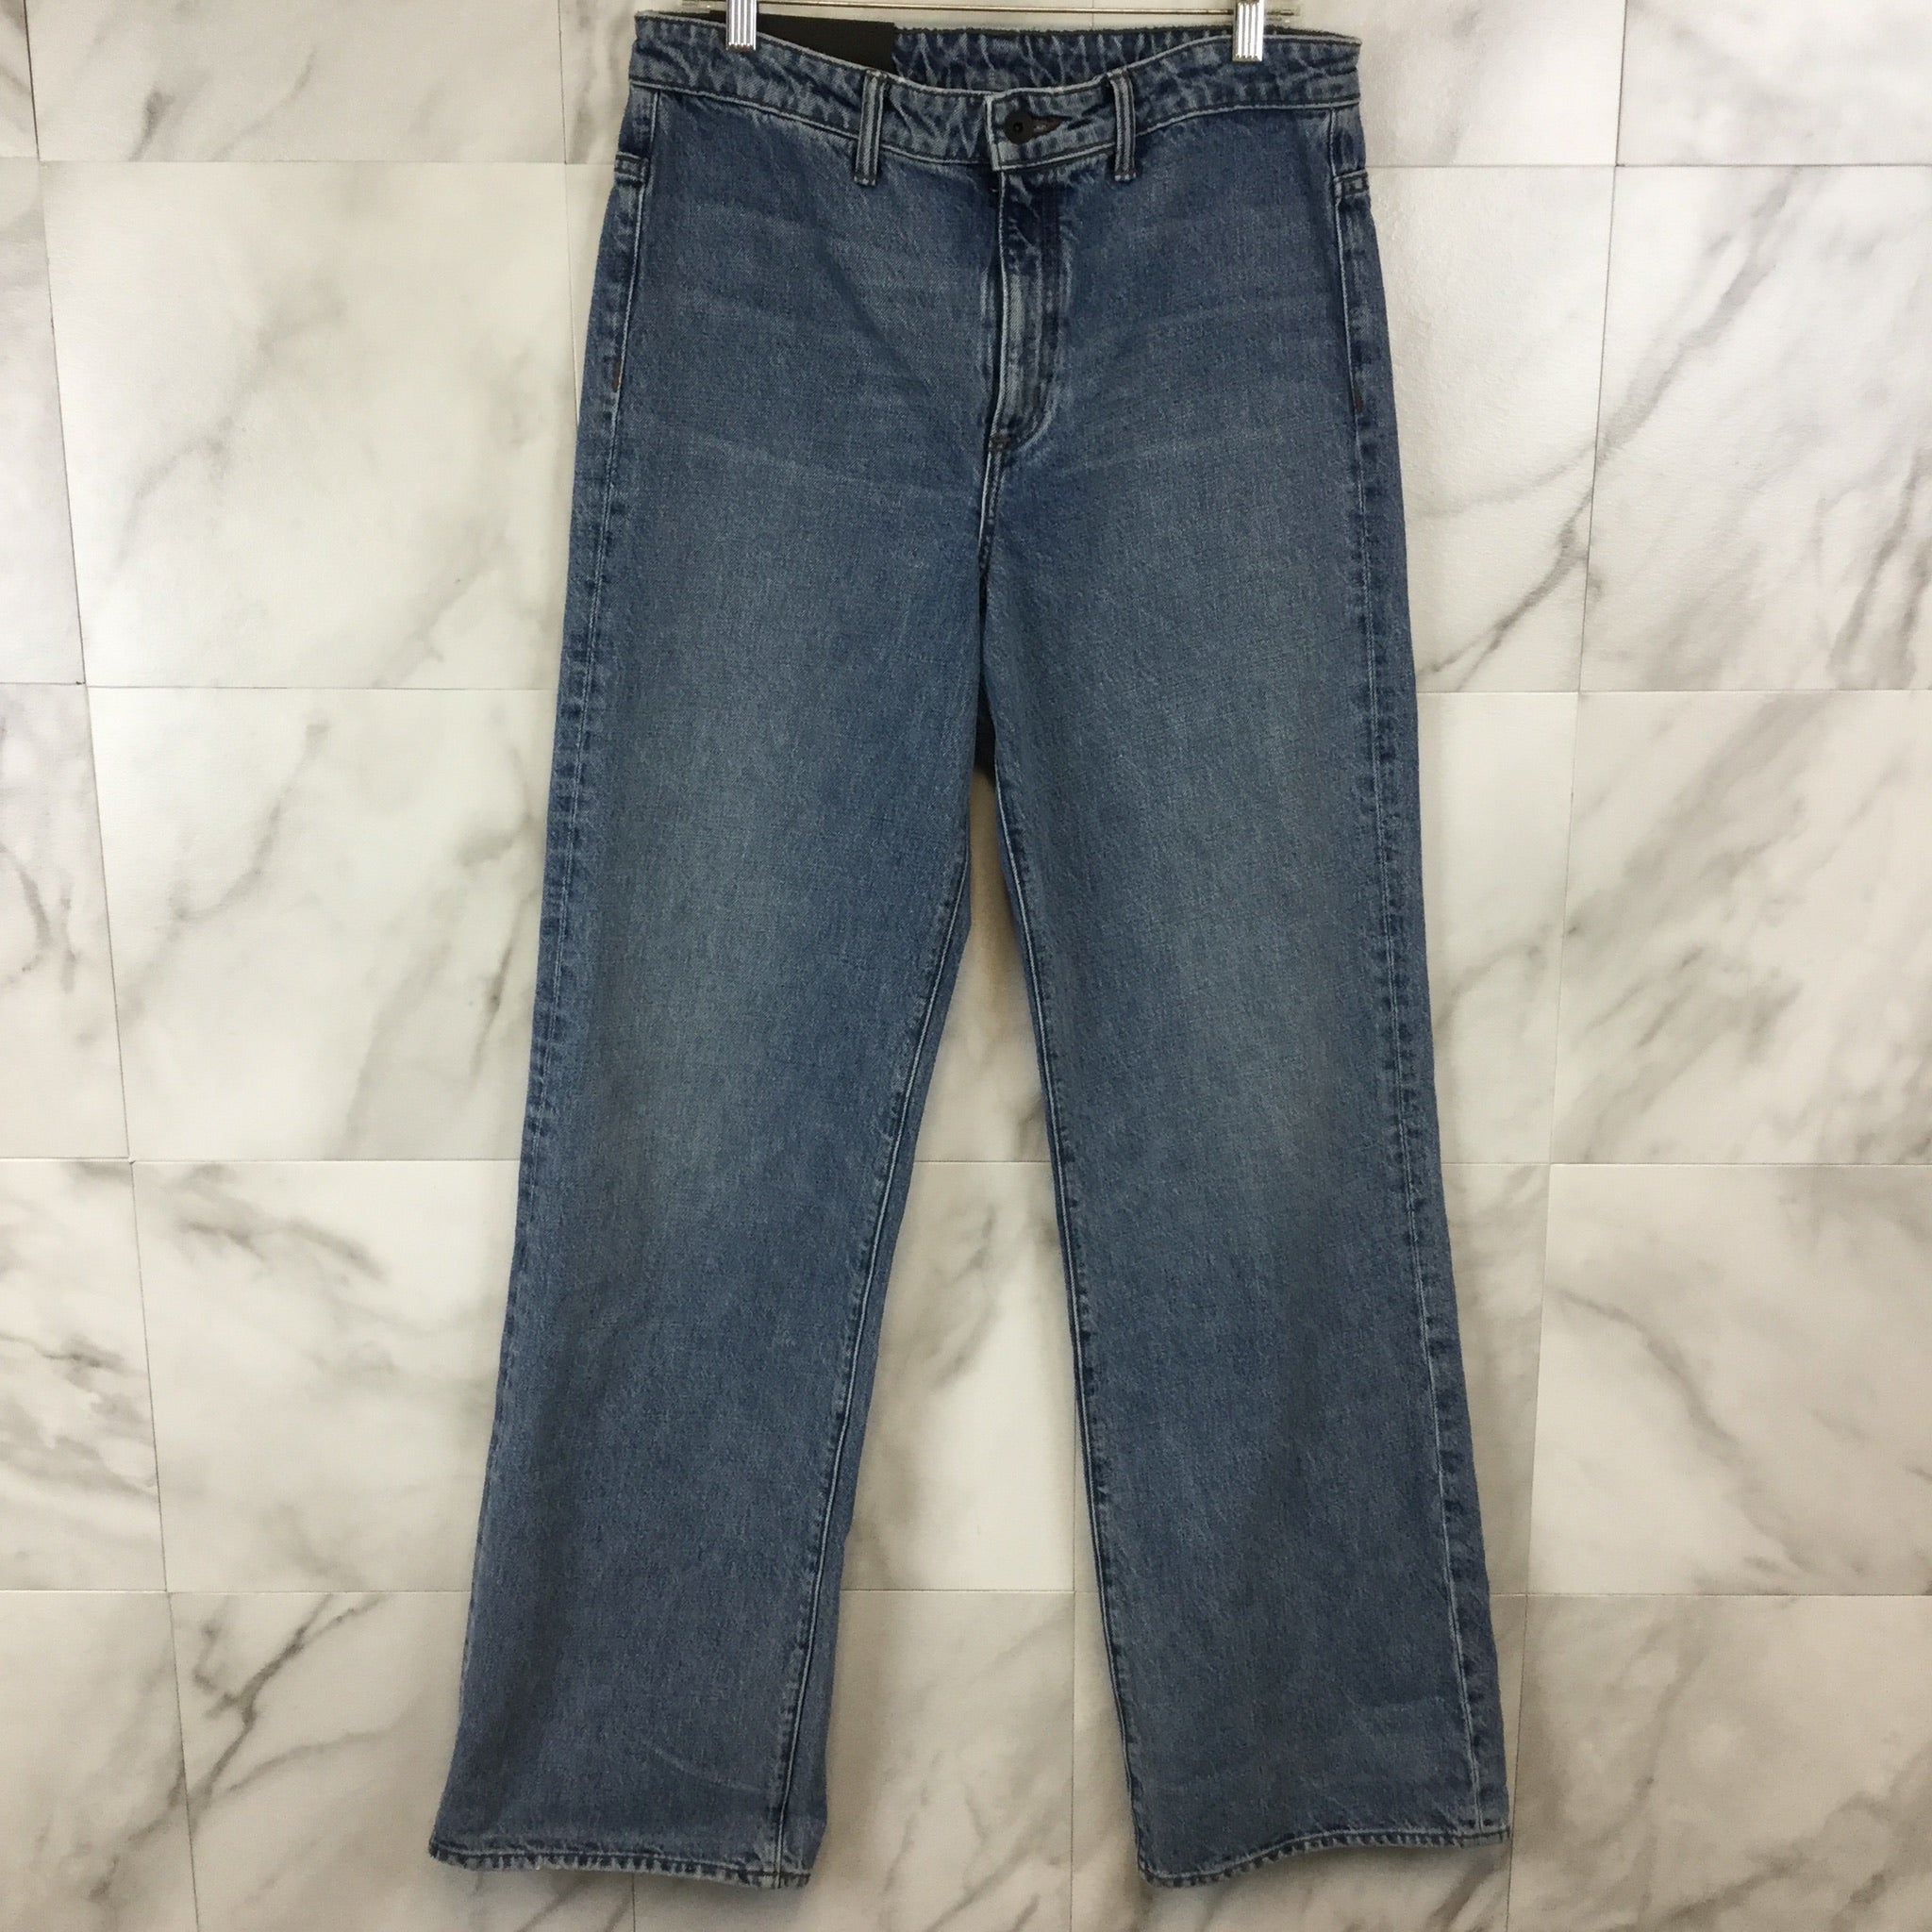 Helmut Lang No Pocket High Rise Jeans - size 32